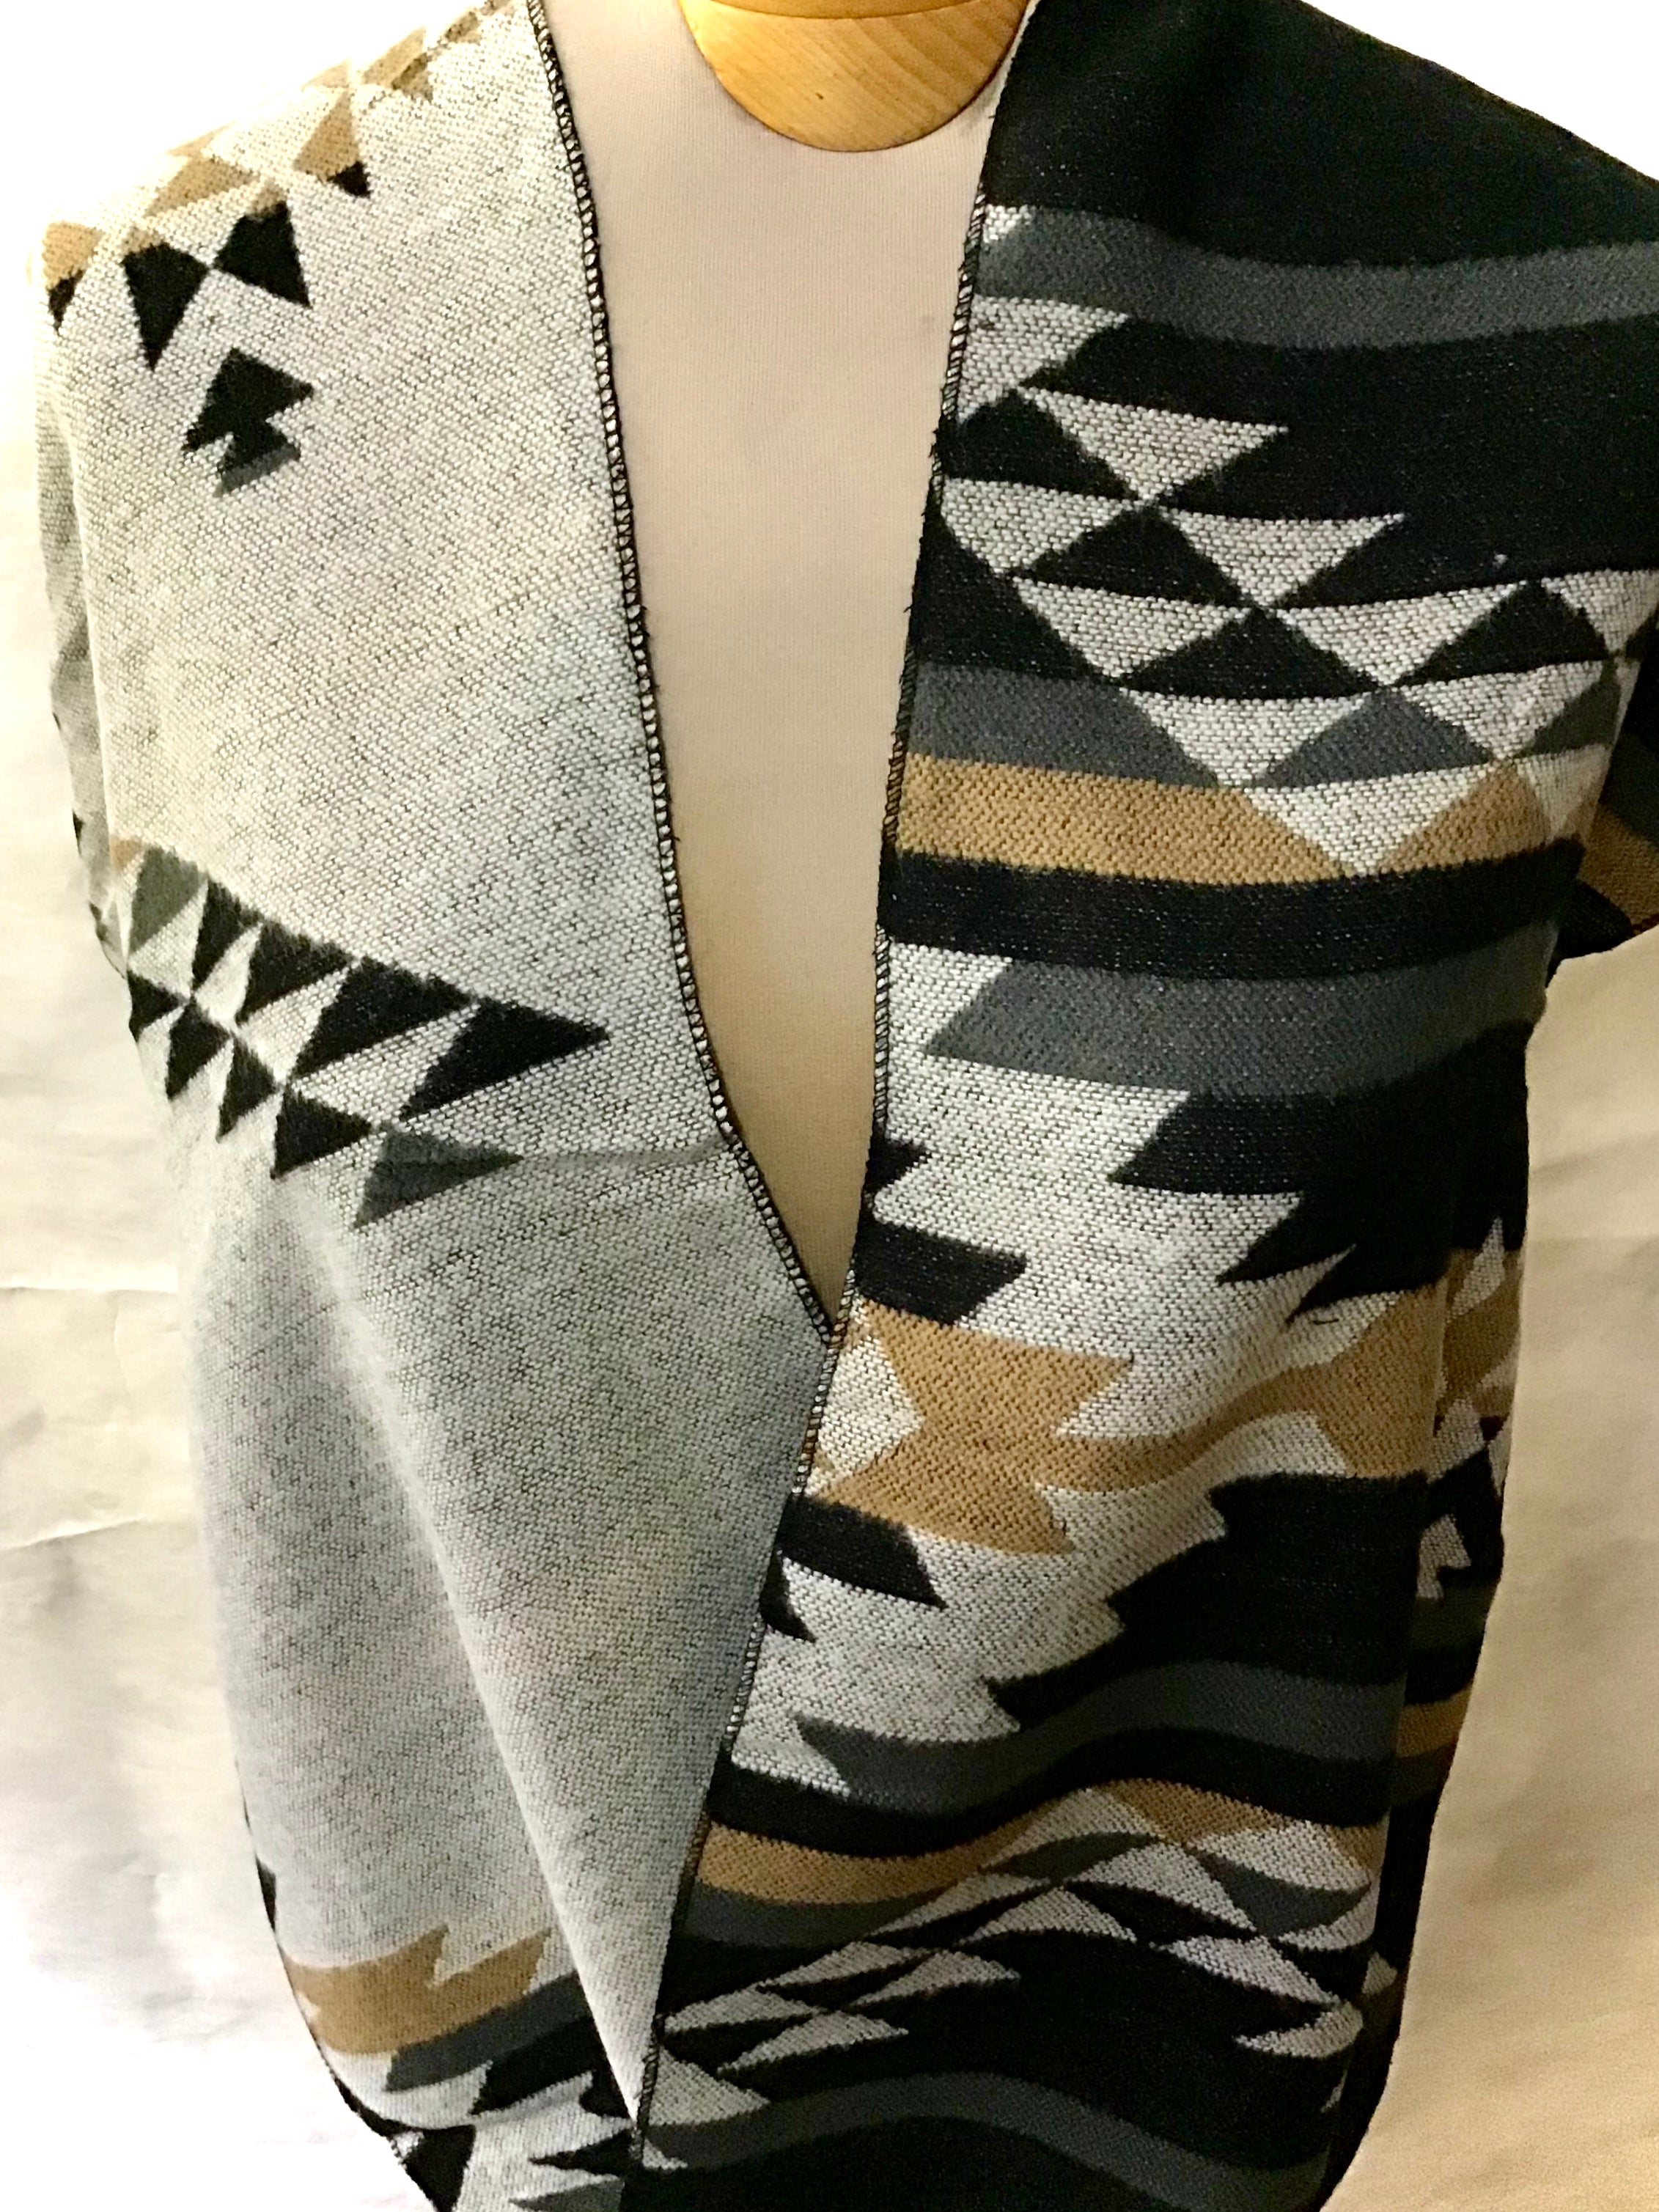 reversible Infinity scarf in greys, black, and tan.